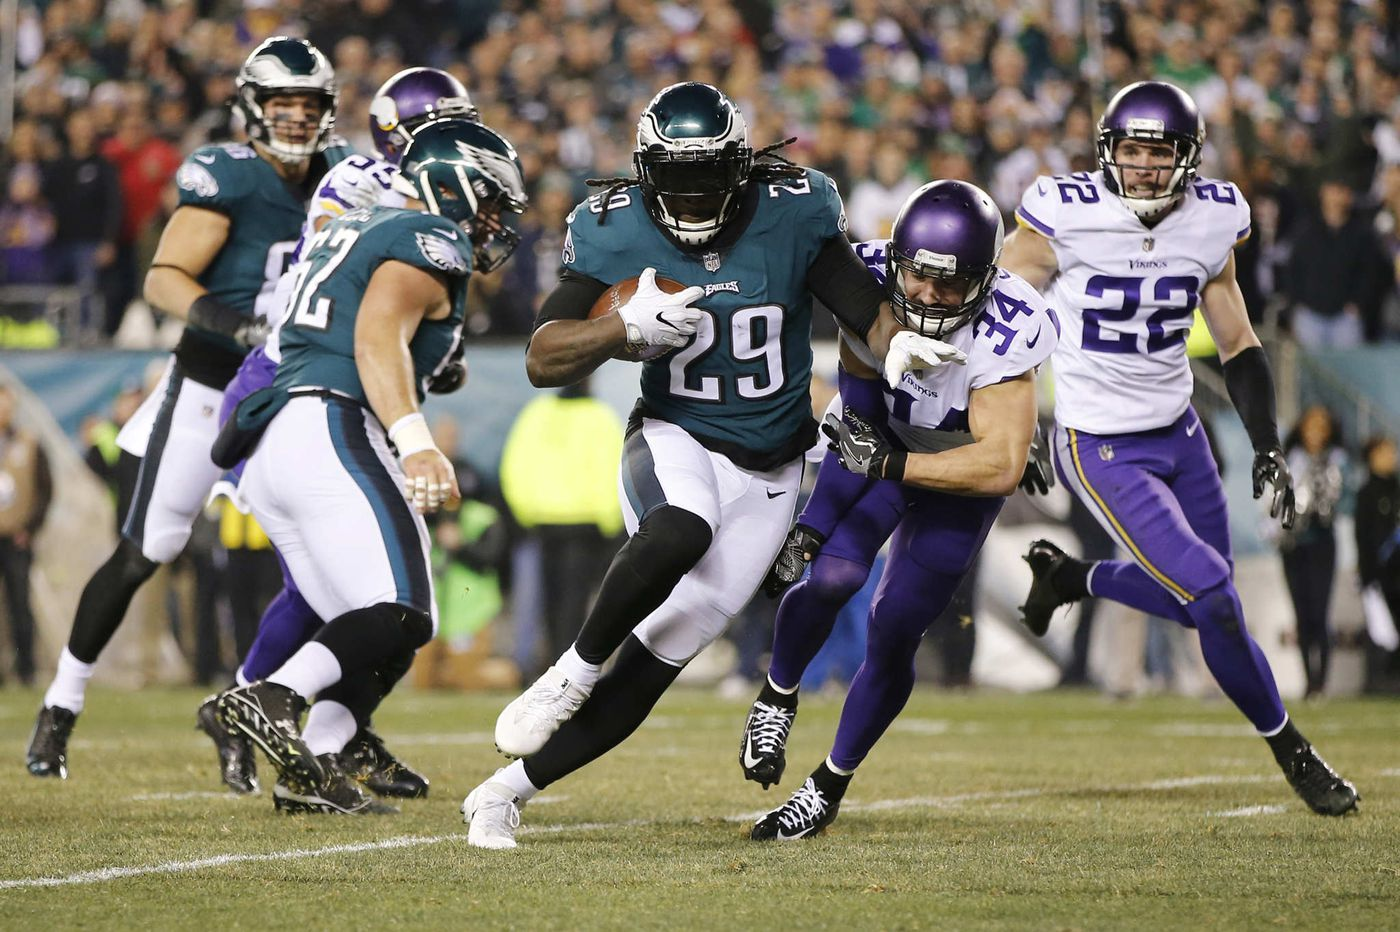 Andrew Sendejo, longtime Viking, might be able to help the Eagles prepare, Mike Groh suggests